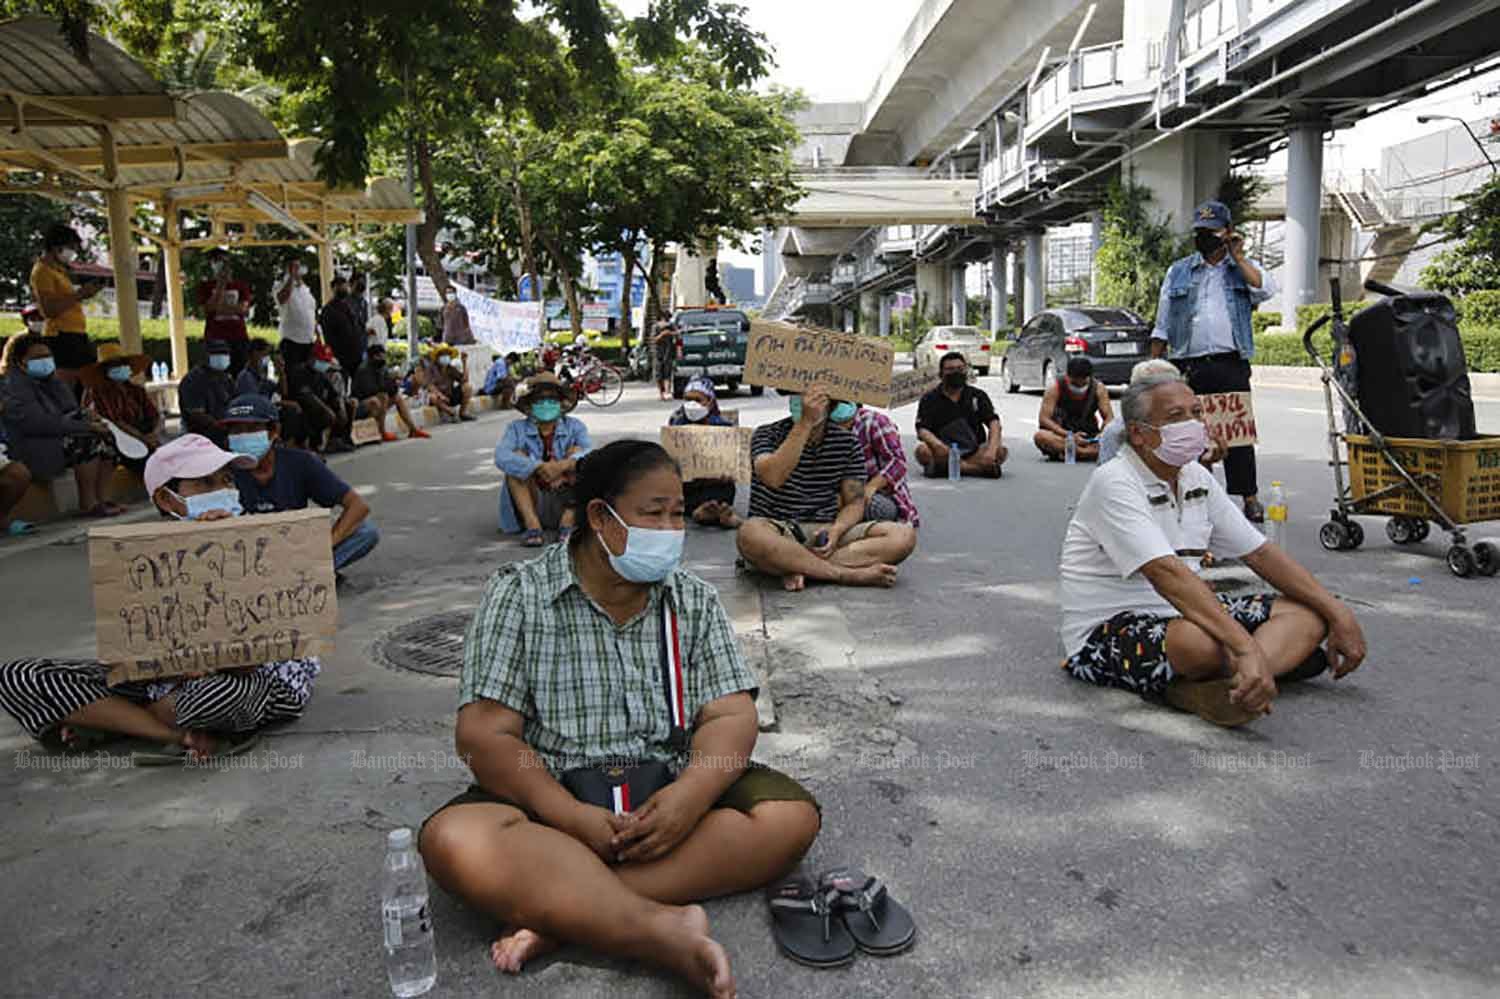 People from a community on Soi Sukhumvit 70/2 stage a sit-in on Sukhumvit Road near Bang Na intersection in Bangkok on Wednesday to demand that neighbours infected with Covid-19 receive treatment in hospital. They fear a community outbreak if the infected are forced to remain at home. They claim at least 20 people are infected. (Photo: Wichan Charoenkiatpakul)